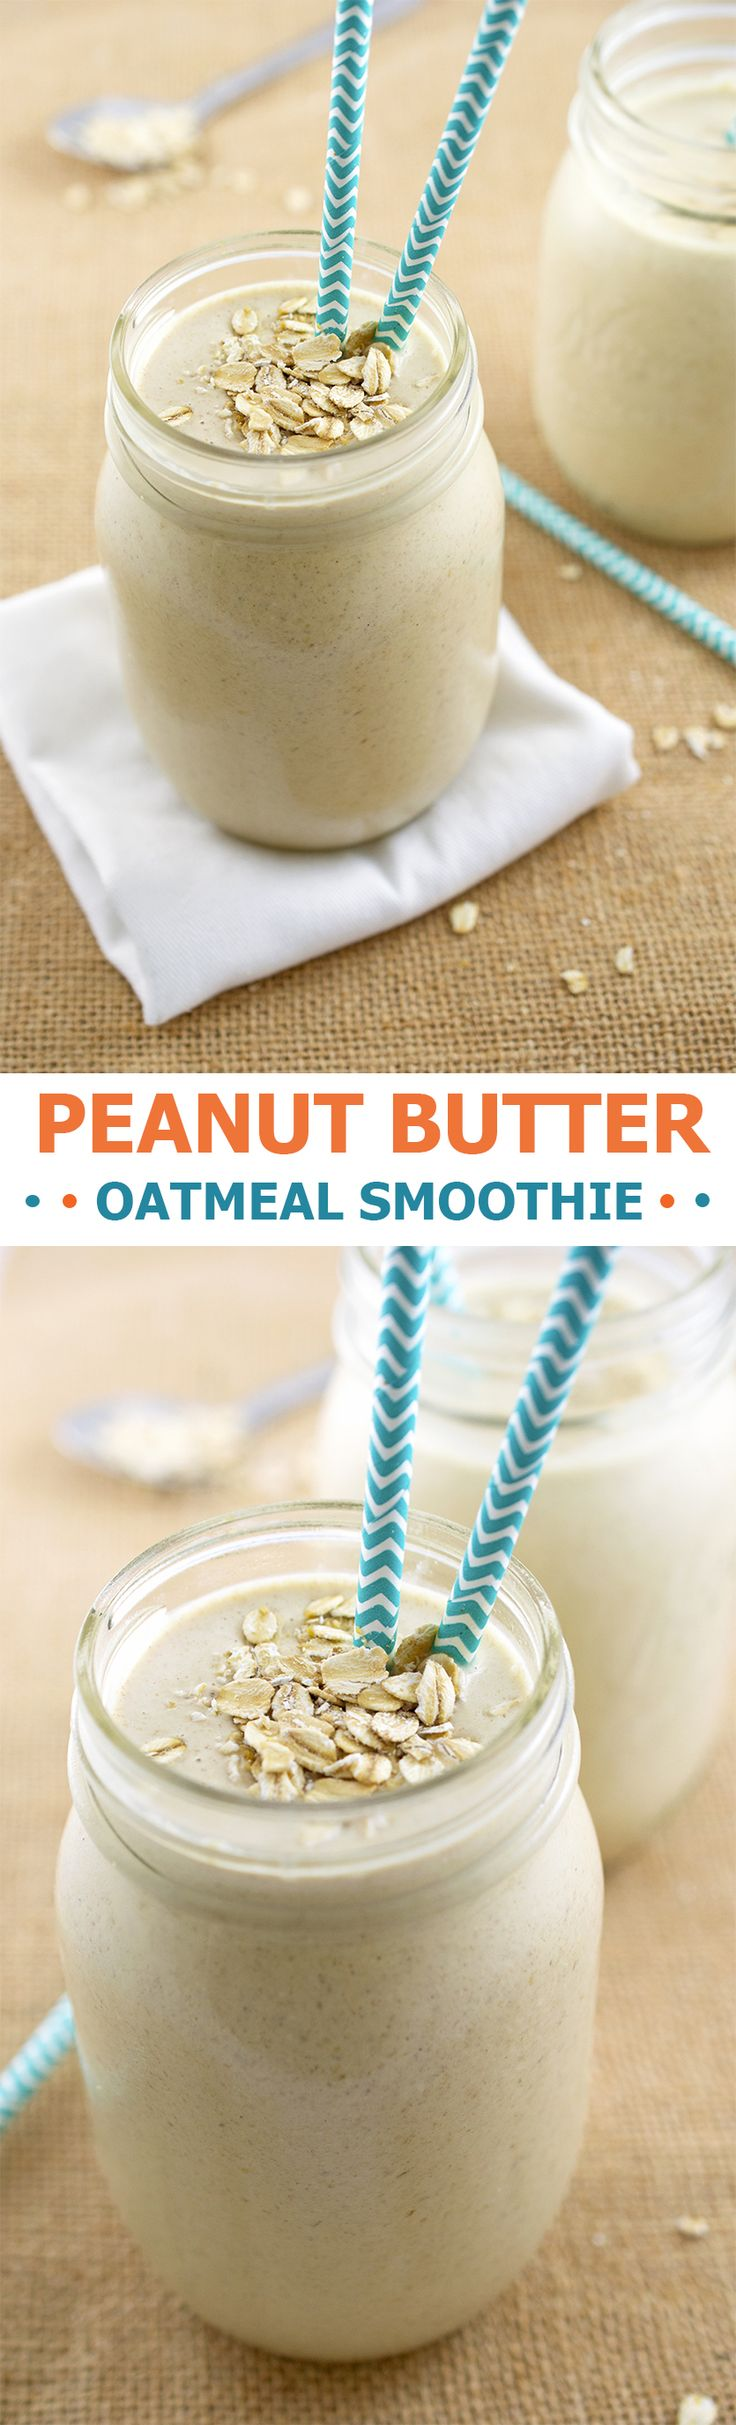 Thick and creamy Peanut Butter Oatmeal Smoothie loaded with creamy peanut butter, old fashioned oats, bananas and vanilla soy milk. | chefsavvy.com #recipe #peanut #butter #oatmeal #smoothie